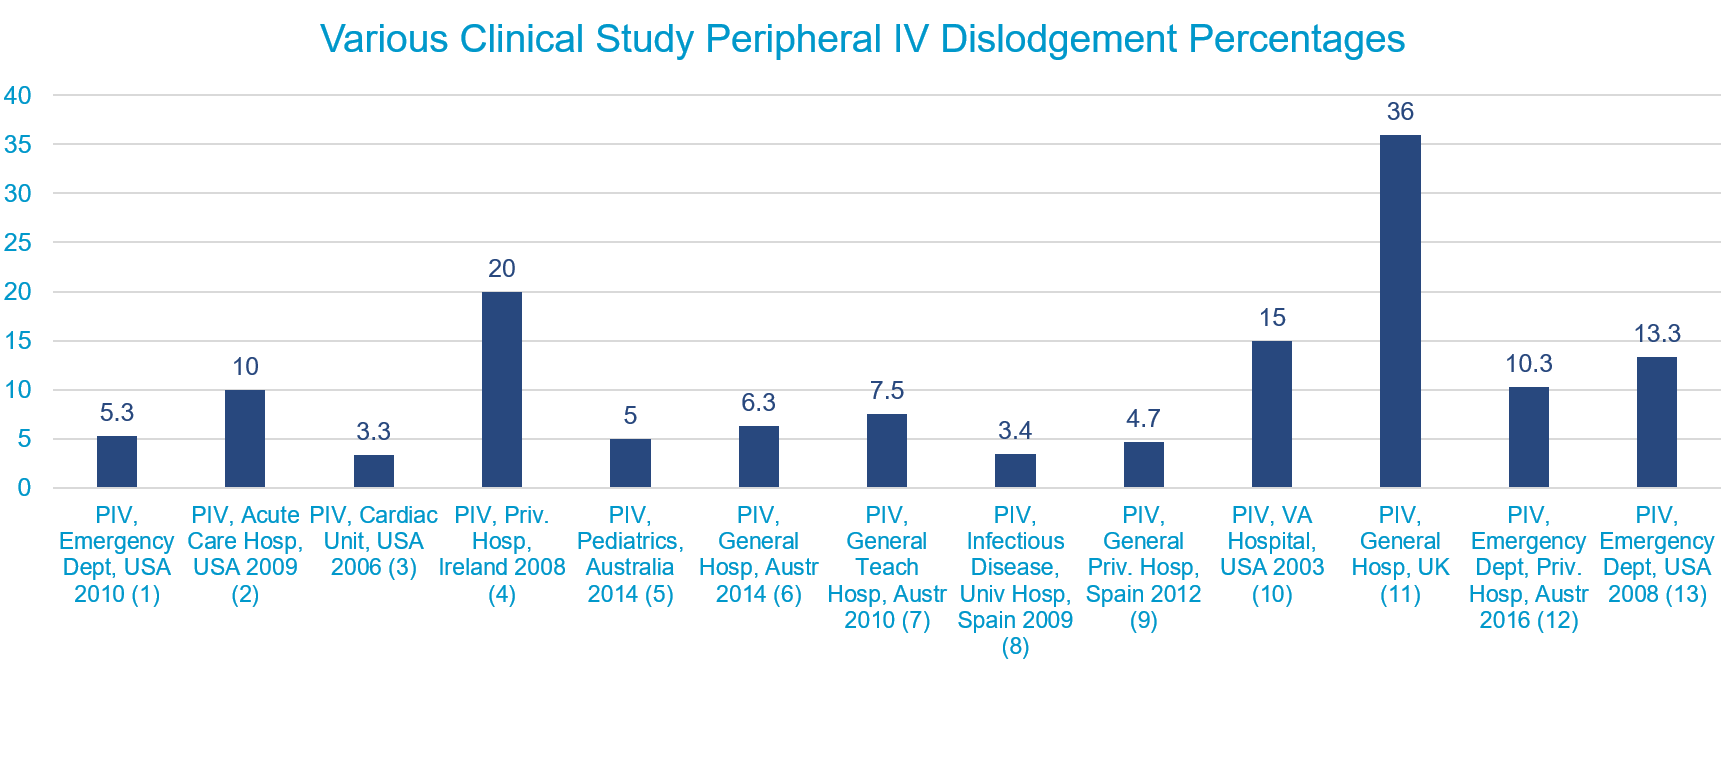 Bar graph displaying various clinical study peripheral IV (PIV) dislodgment percentages